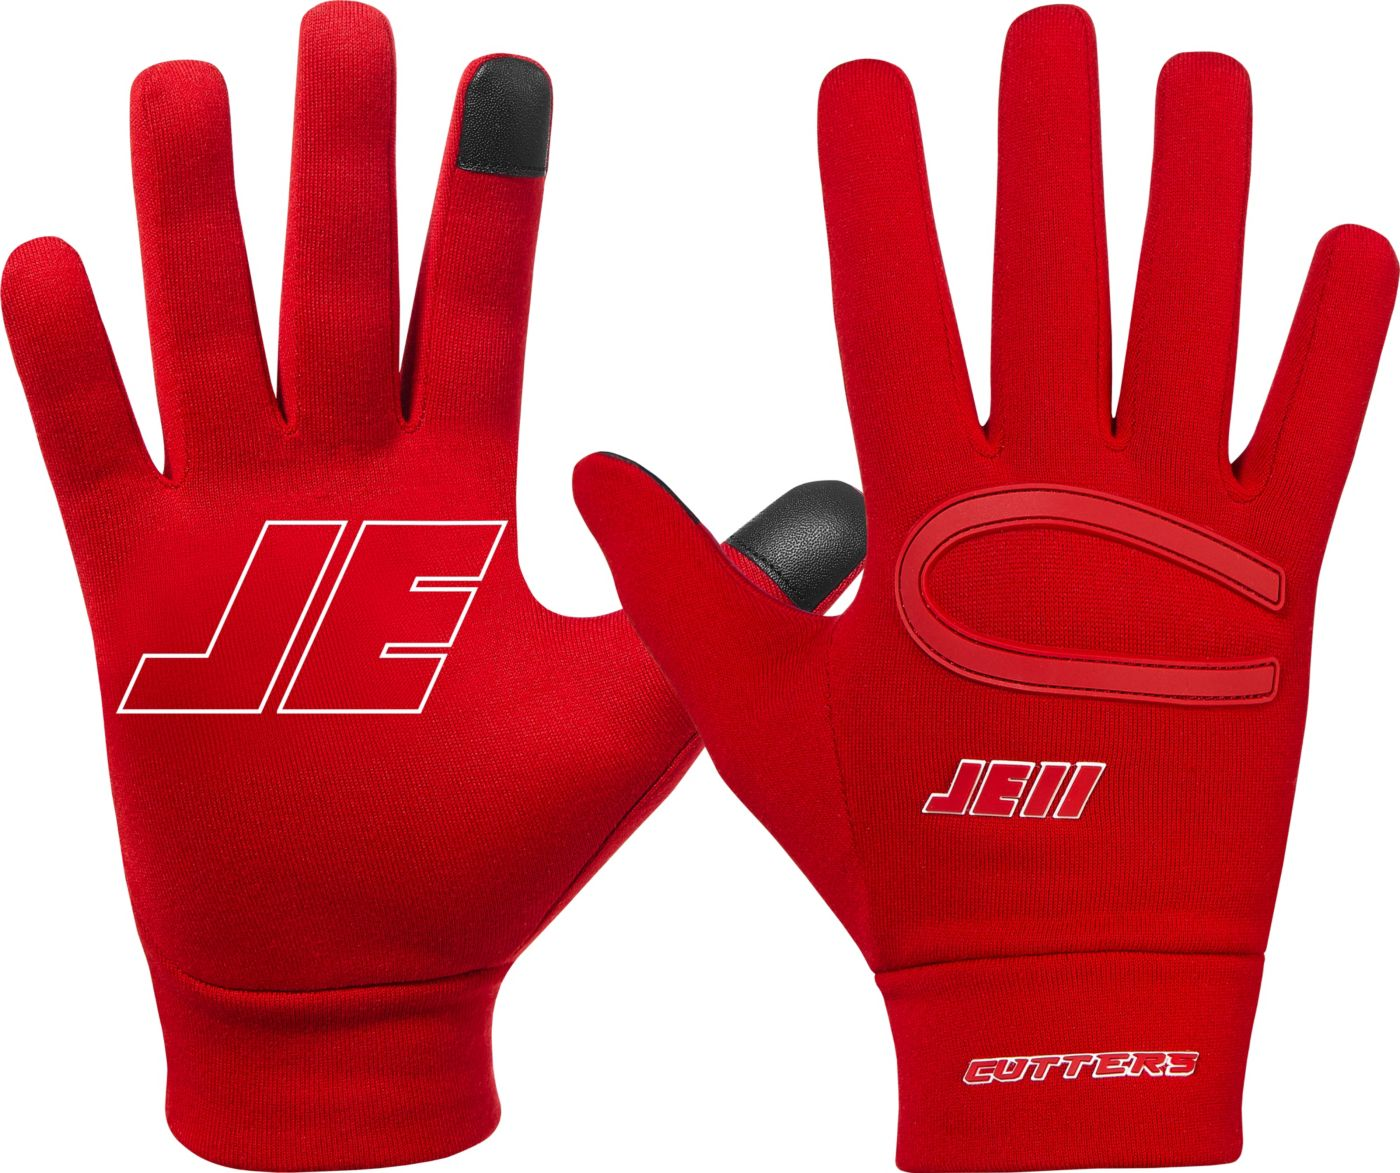 Cutters Adult Julian Edelman II Fan Series Gloves